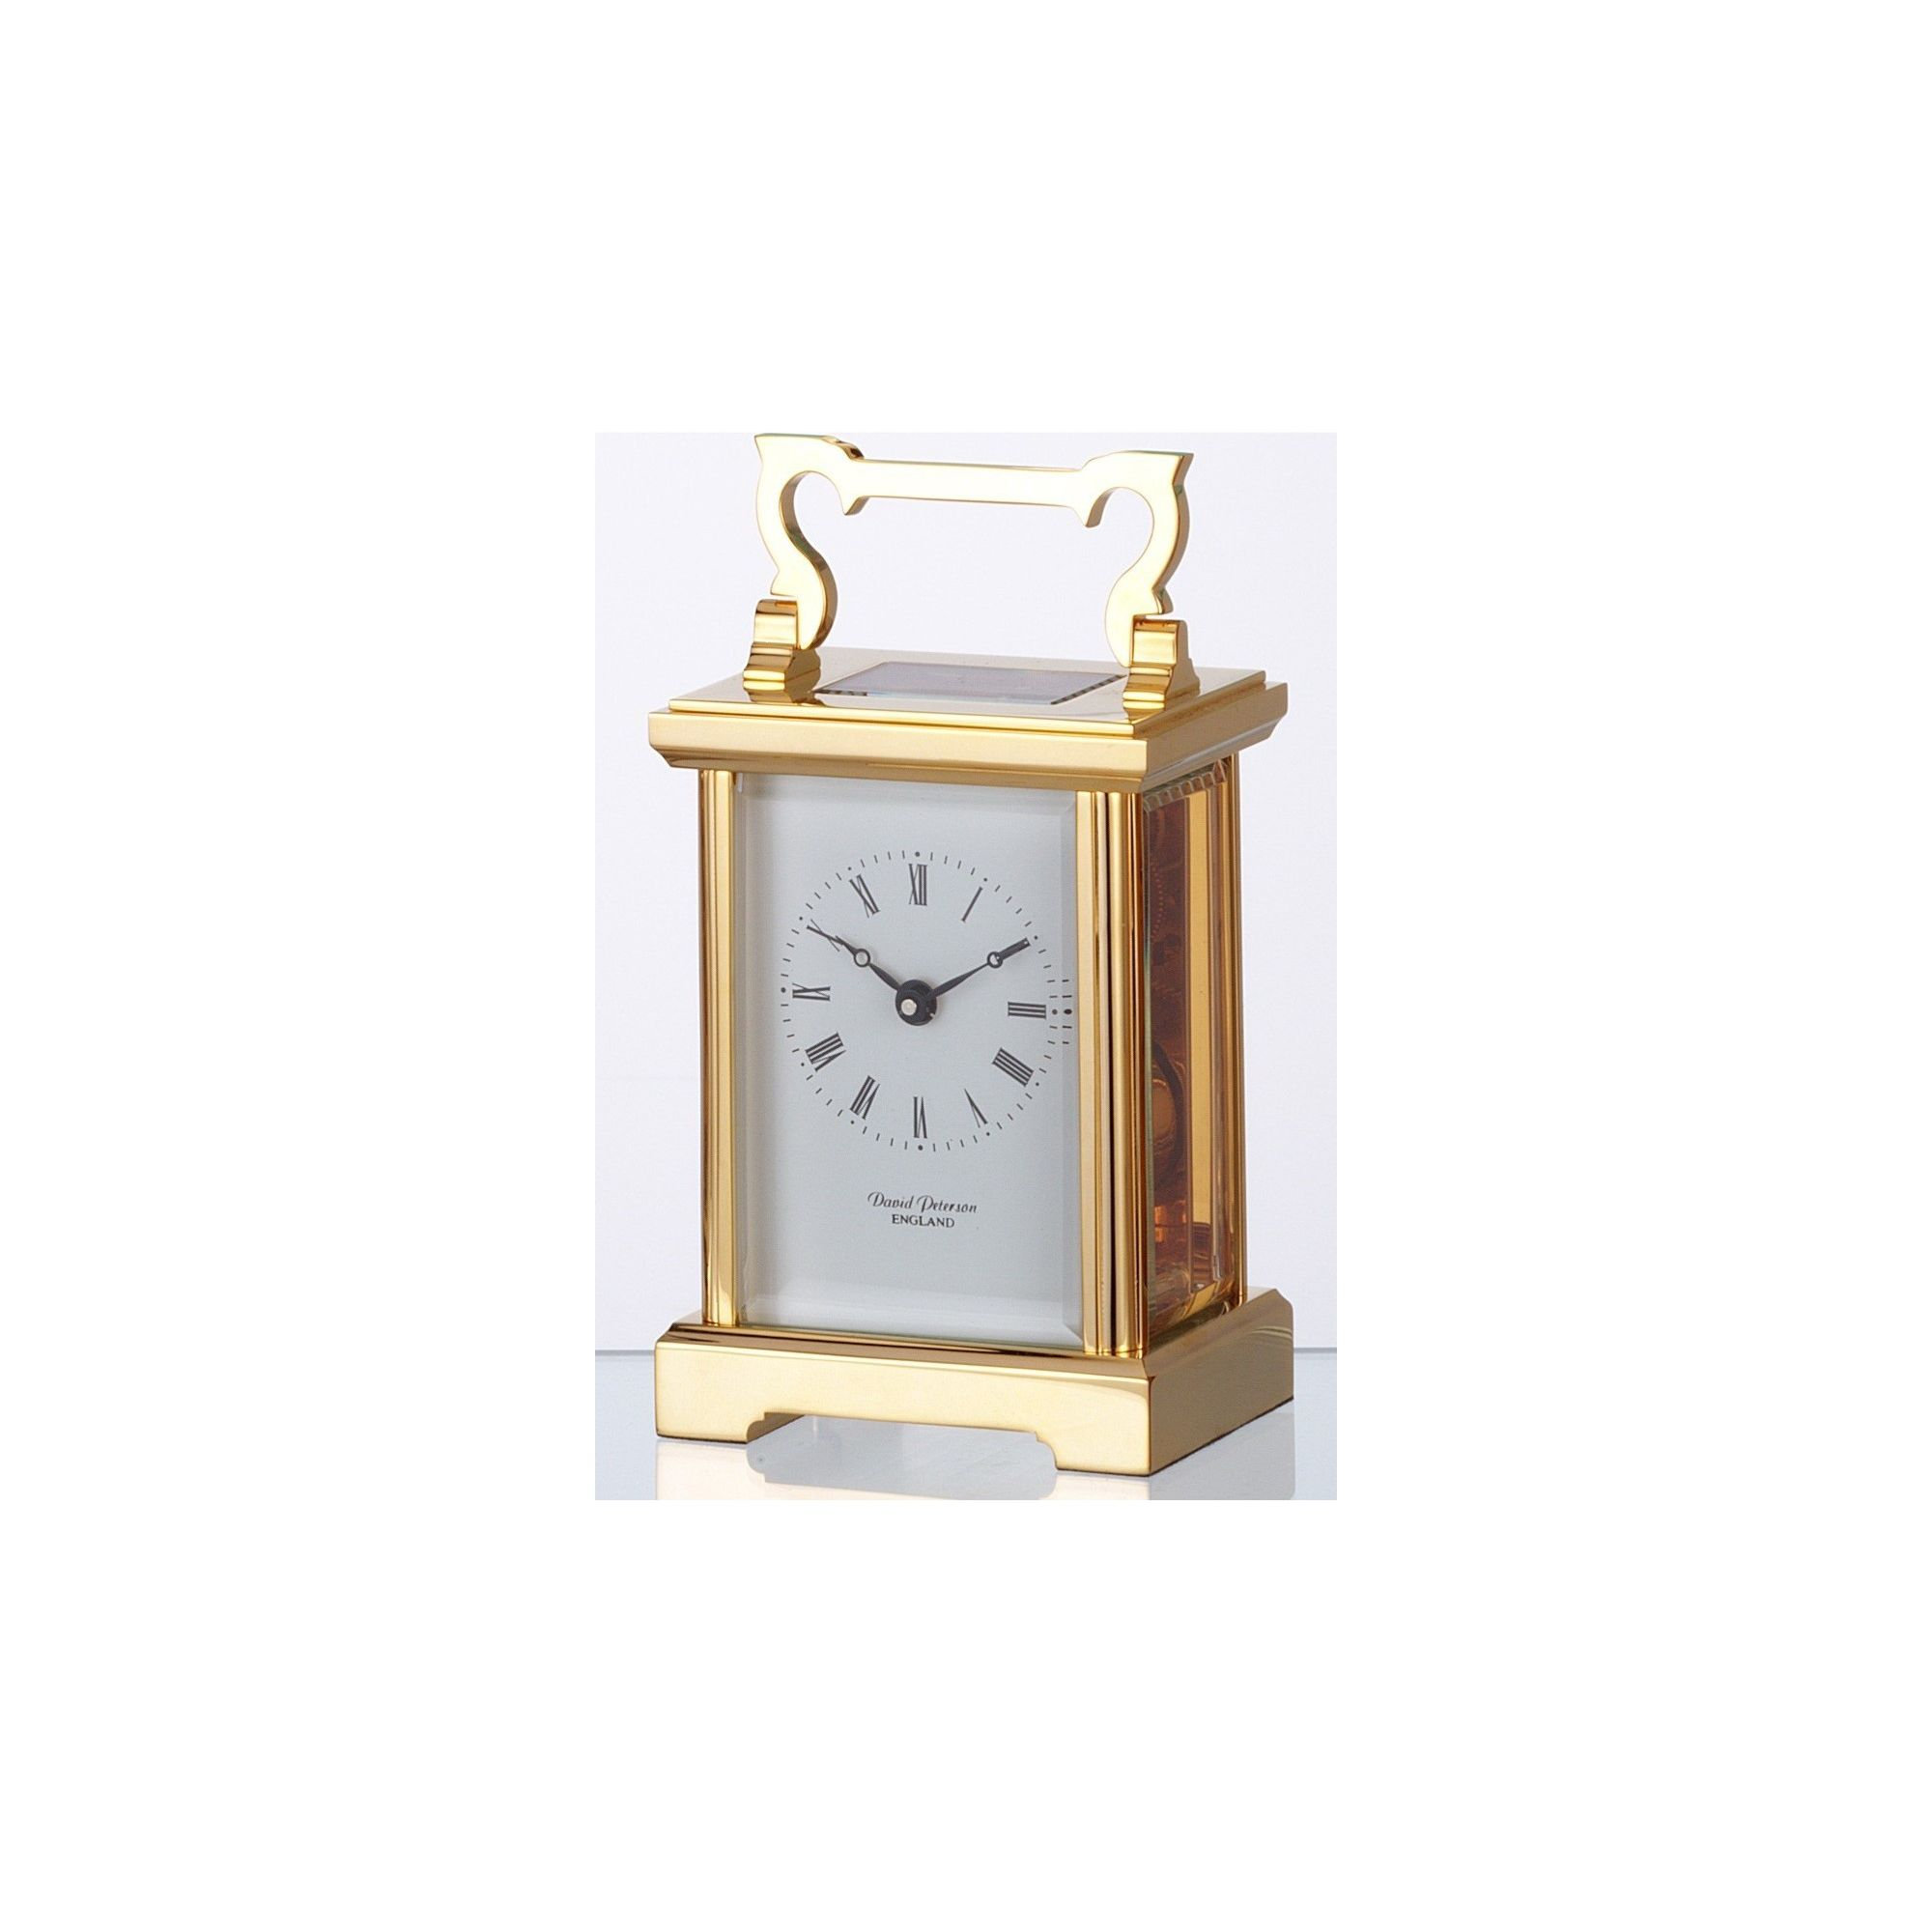 David Peterson Ltd 8 Day Anglais Carriage Clock in Gold at Tescos Direct